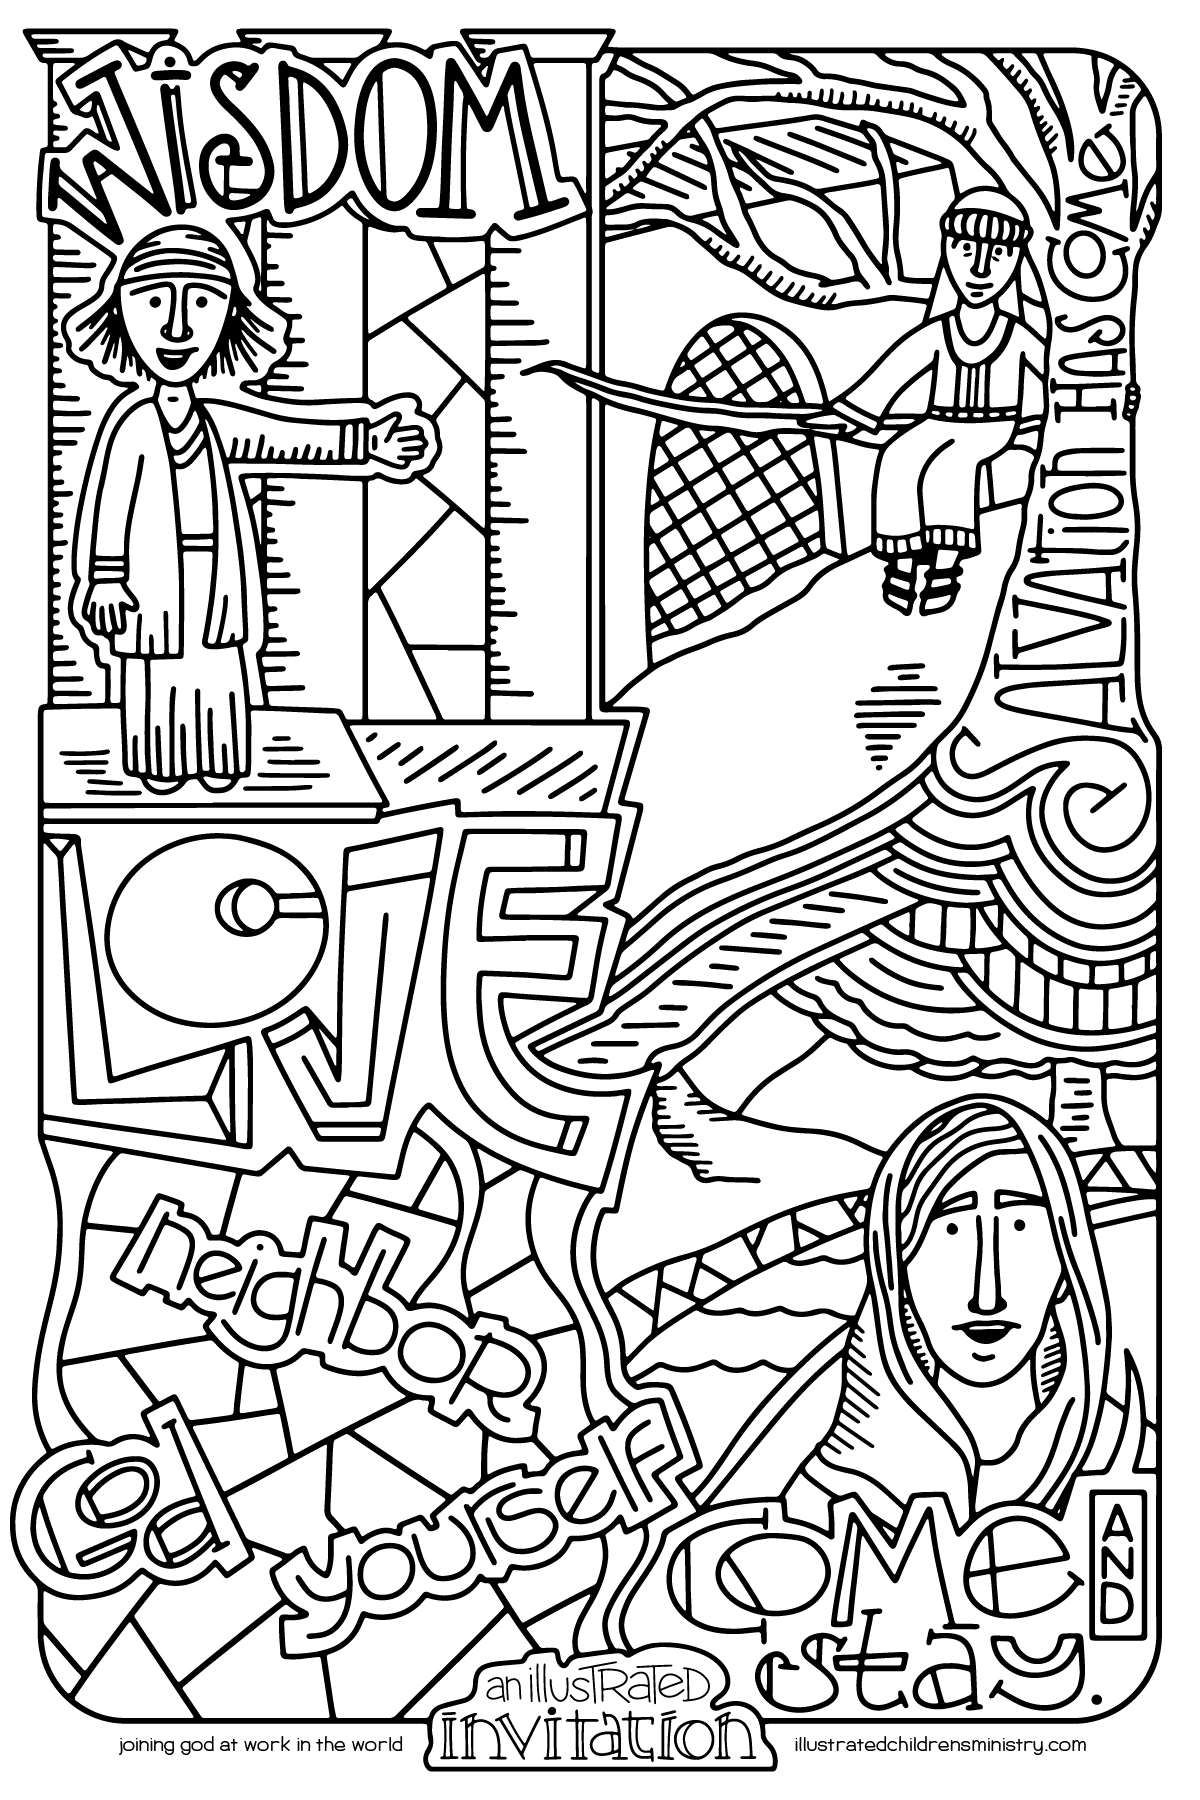 Illustrated Invitation coloring page 2: God's Invitation in the New Testament